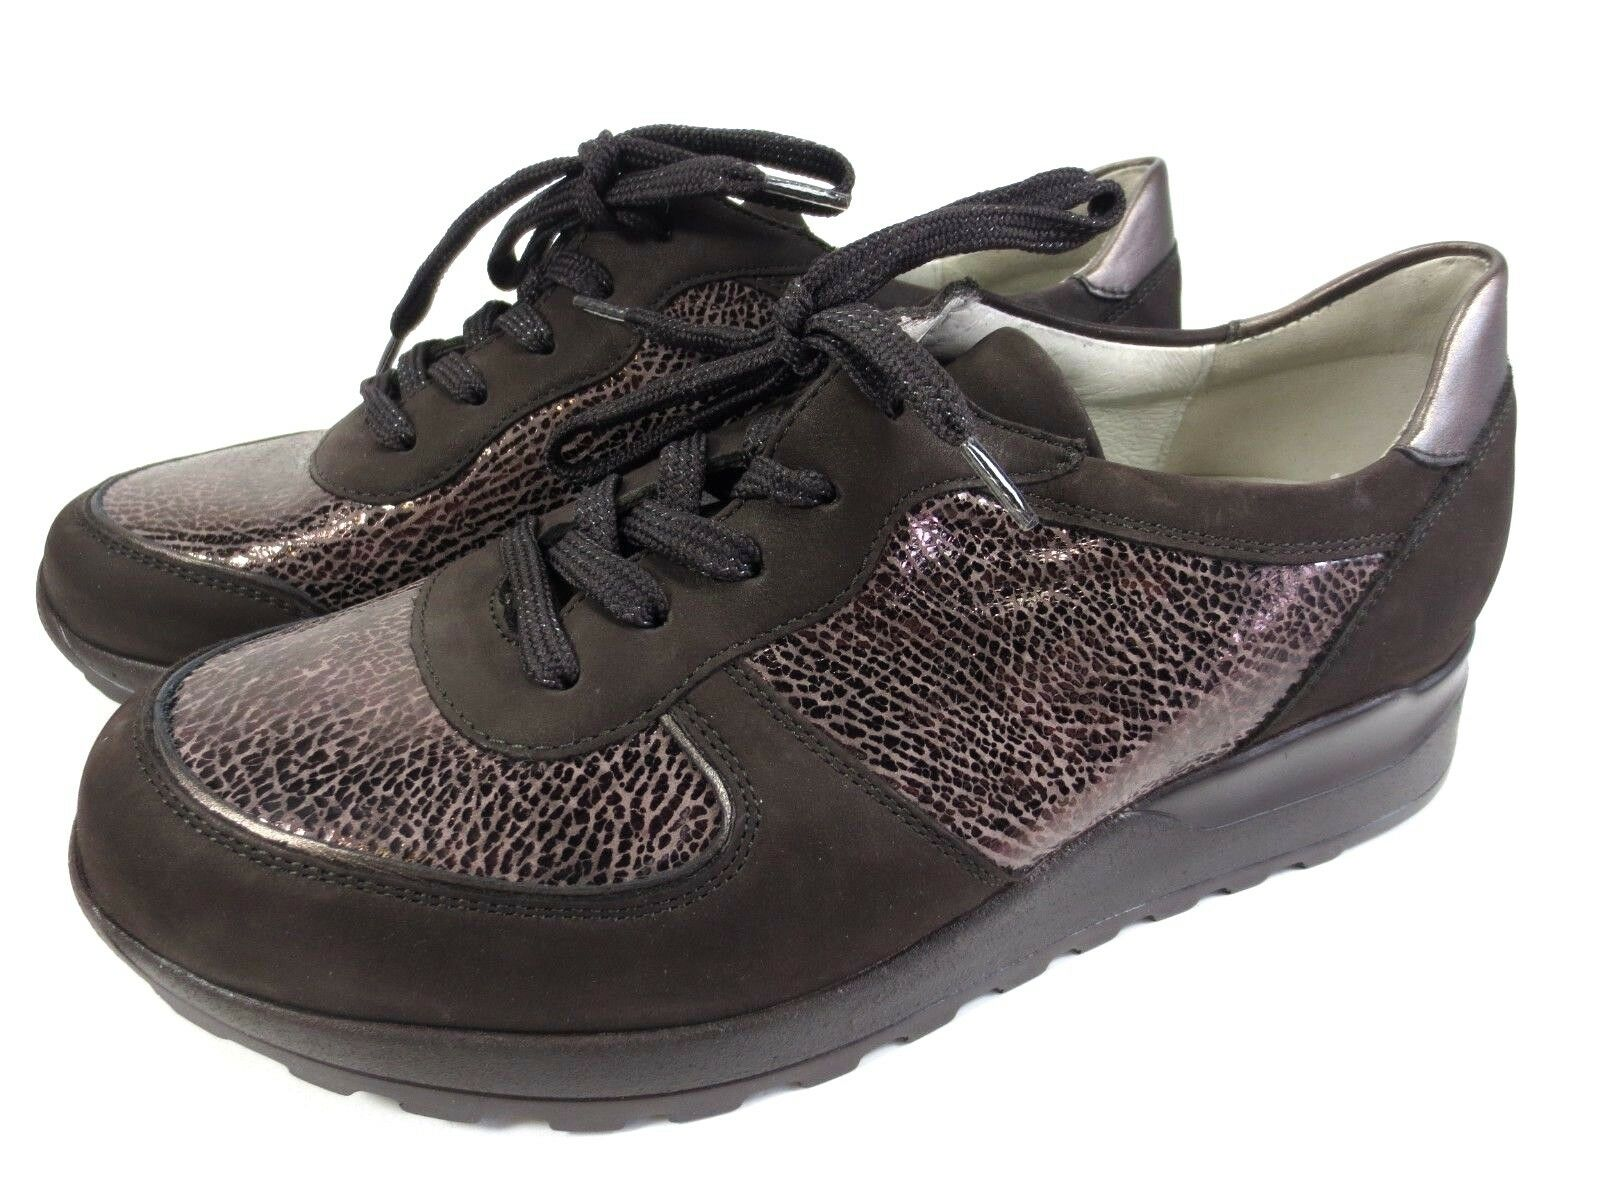 Rôdeur Hiroko confort cuir chaussures basses marron Taille 37,5 UK 4,5 H 342